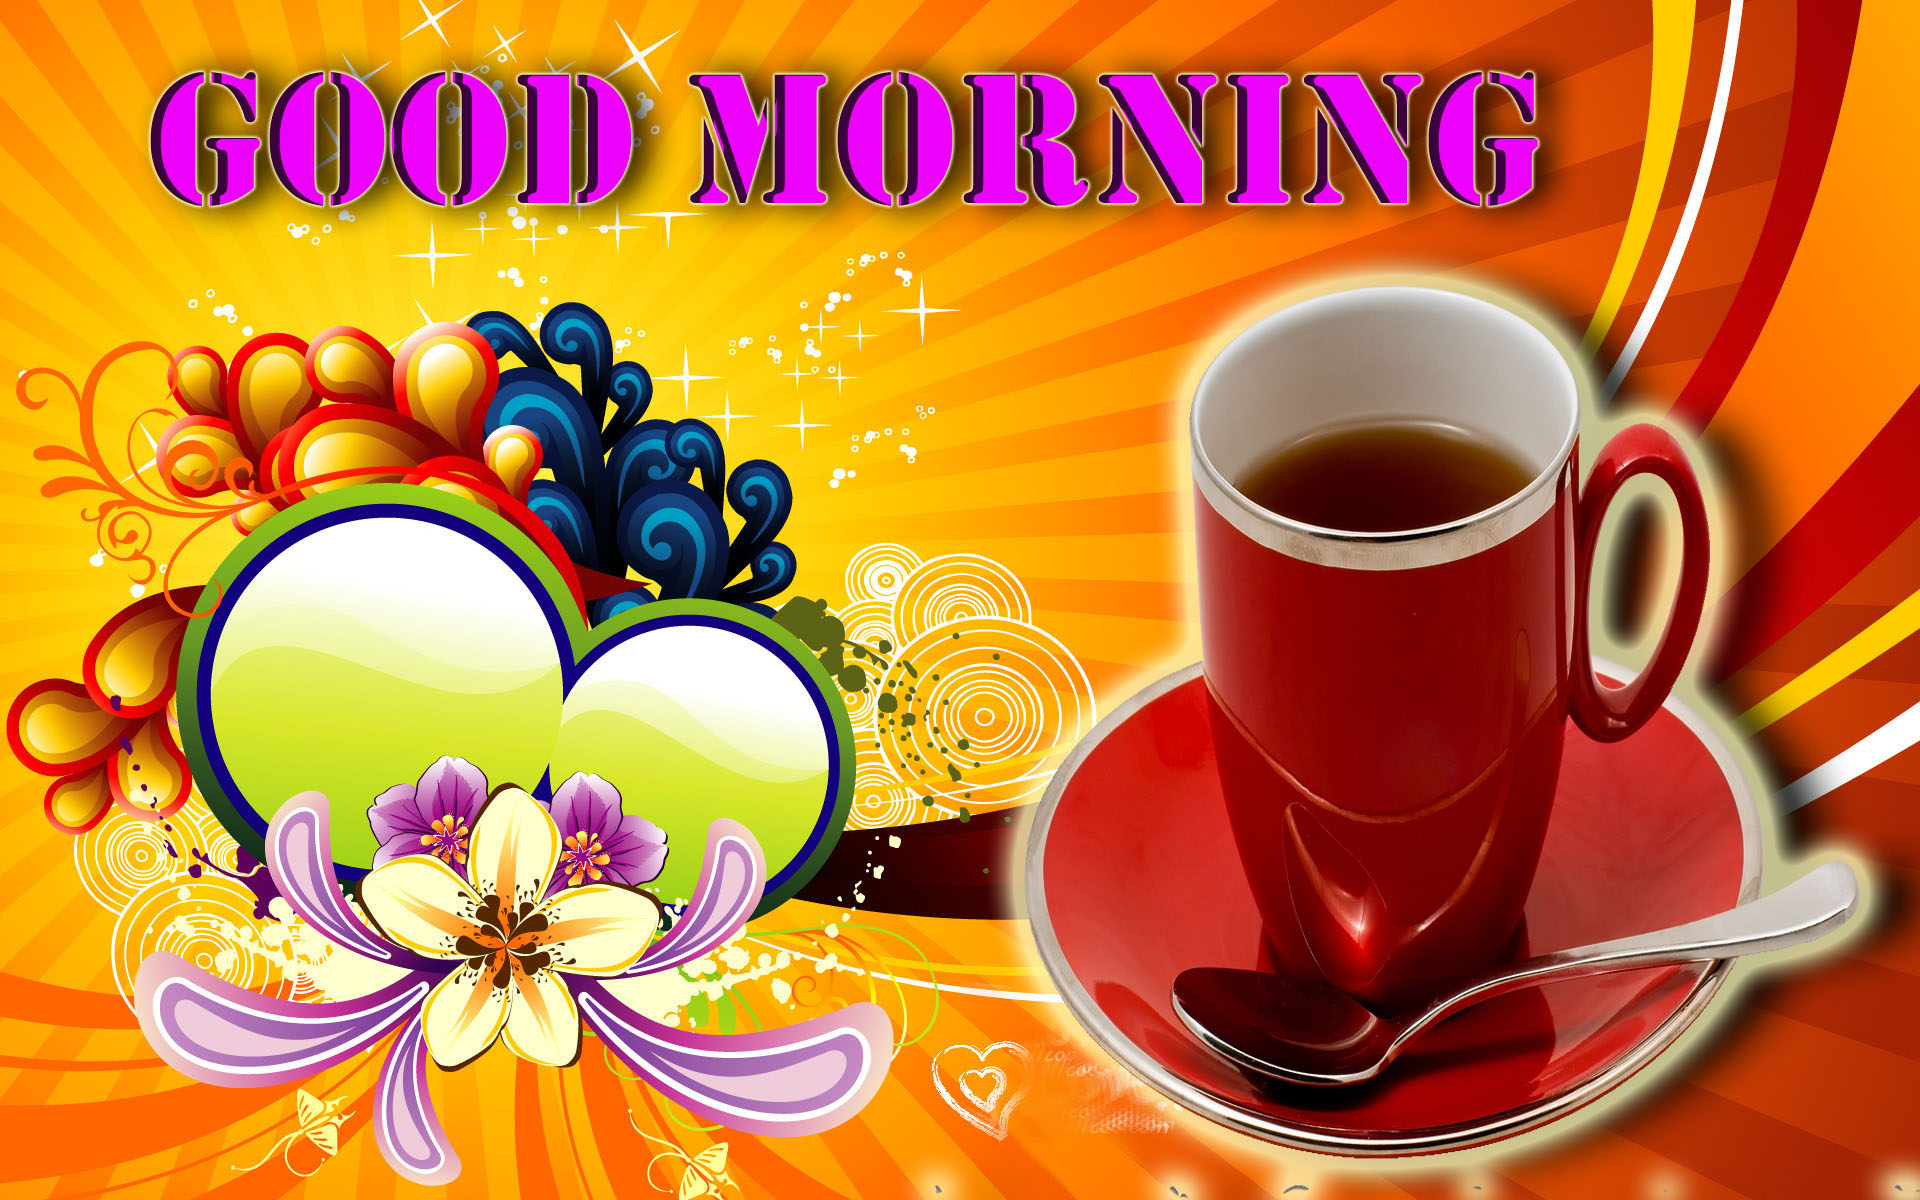 Happy Good Morning Images for Whatsapp Free Download